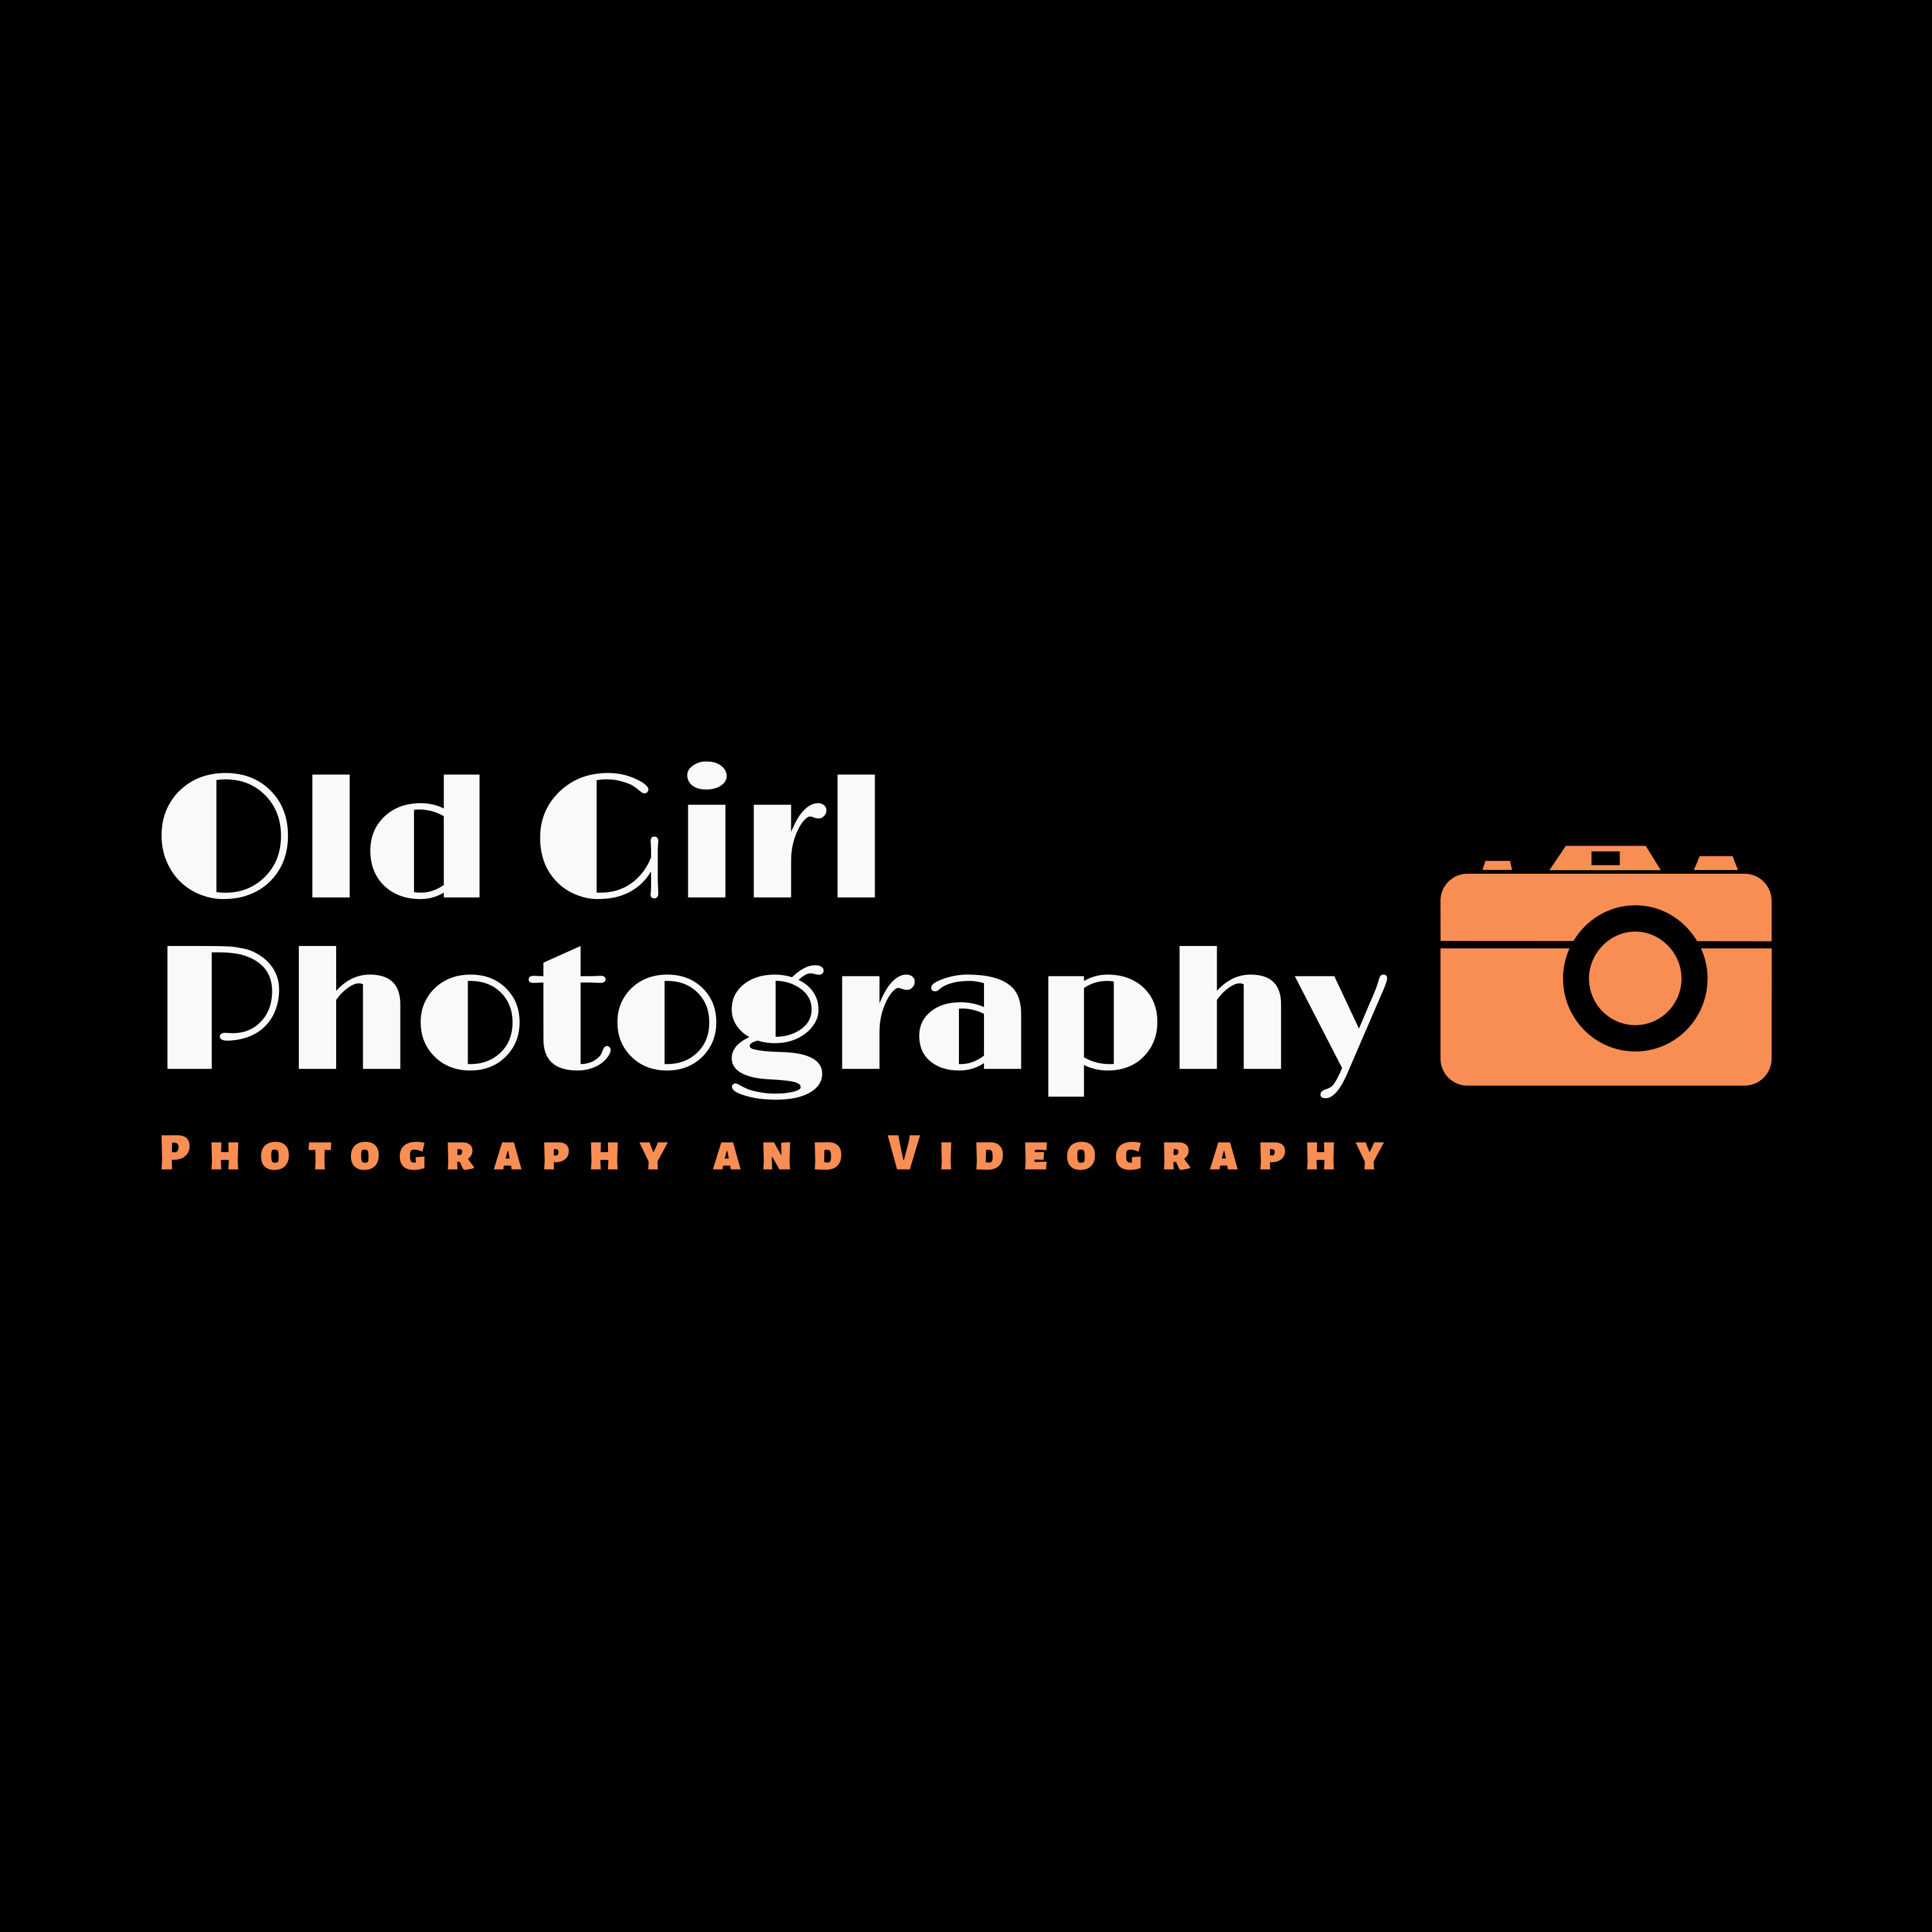 Old Girl Photography